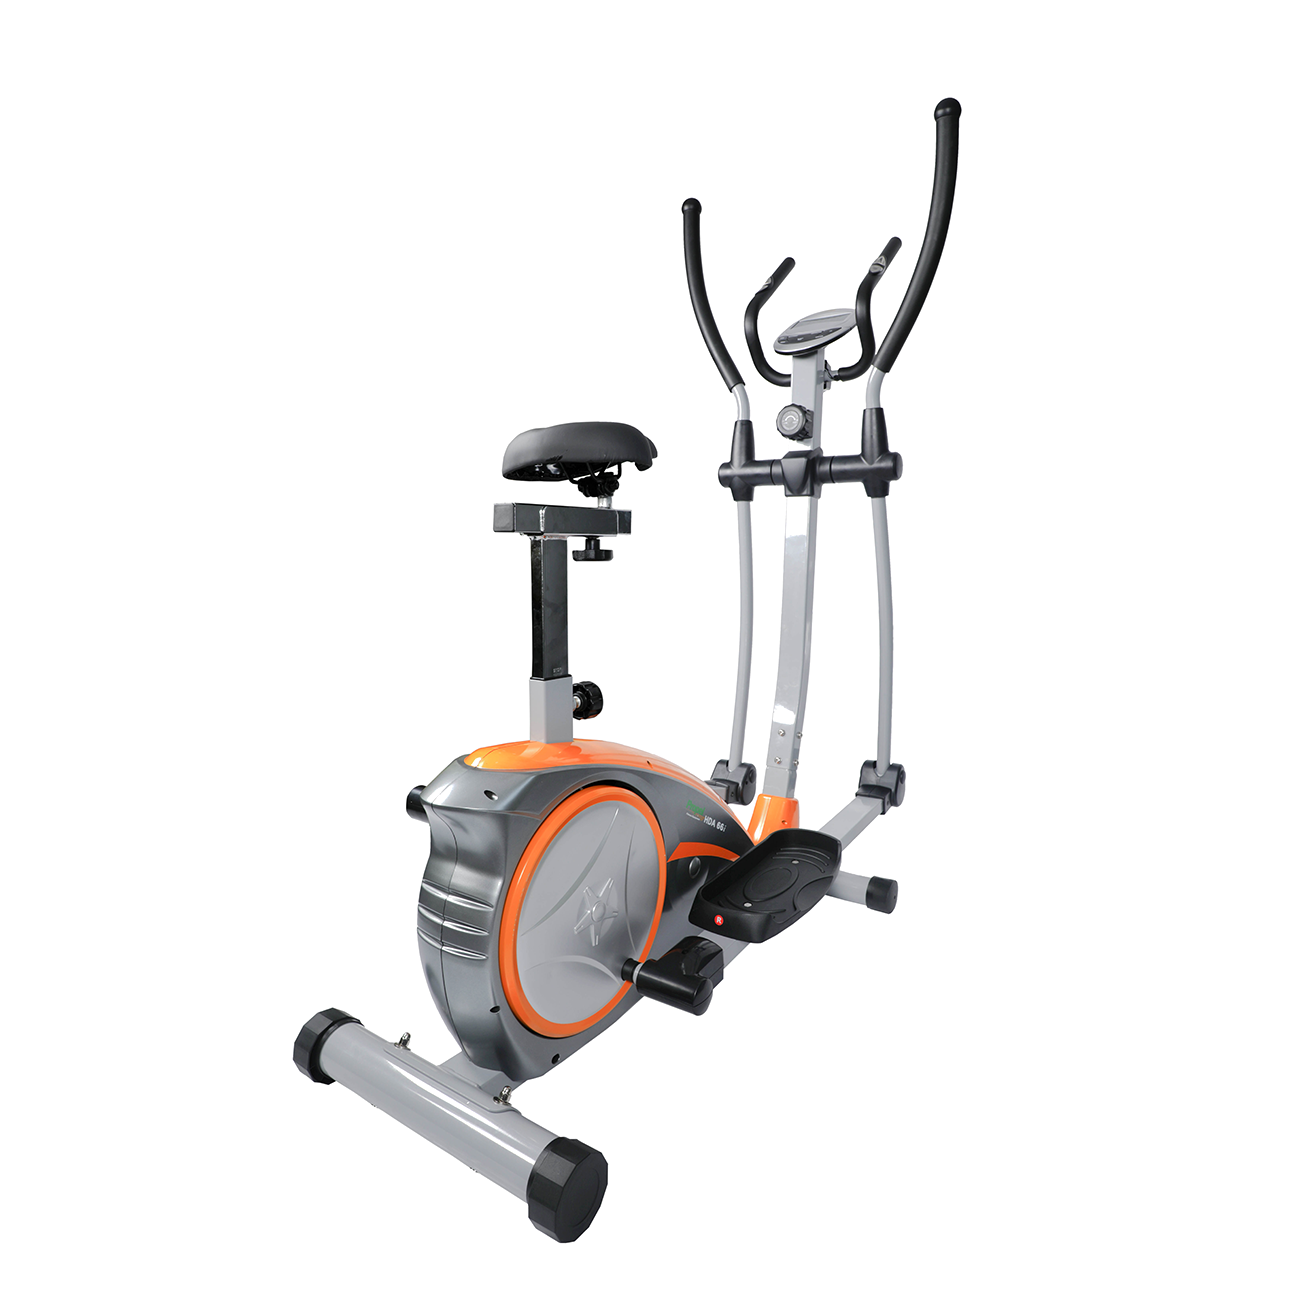 c231d7c5 Propel Seated Cross Trainer HDA66i With Fitness Rating, Body Fat Display,  BMI & BMR Calculator